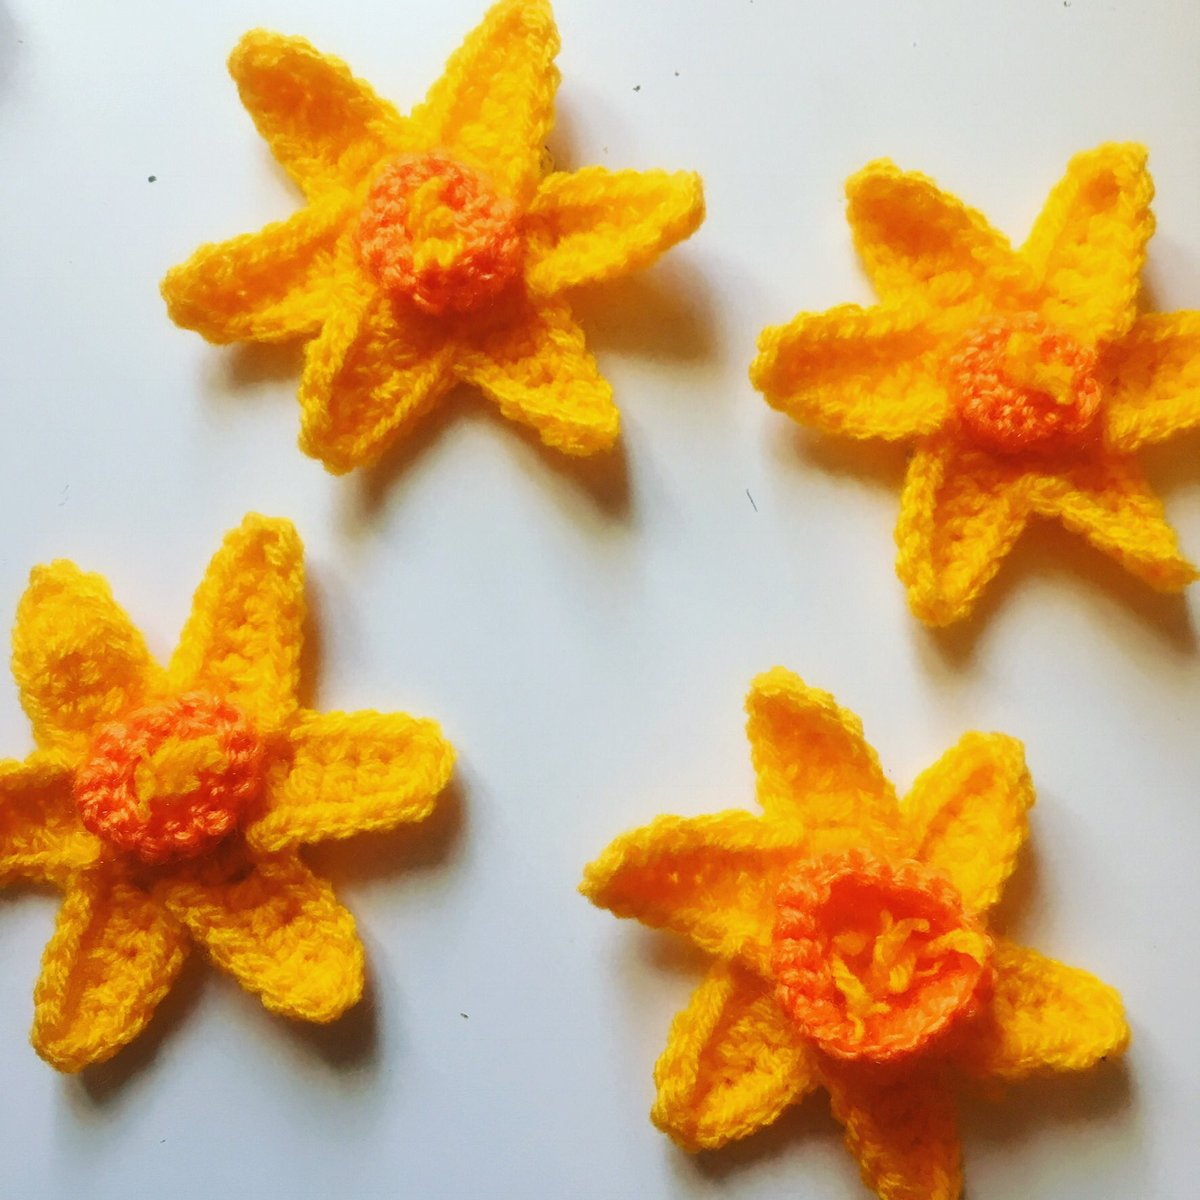 There are 4 yellow, crocheted daffodils with orange middles